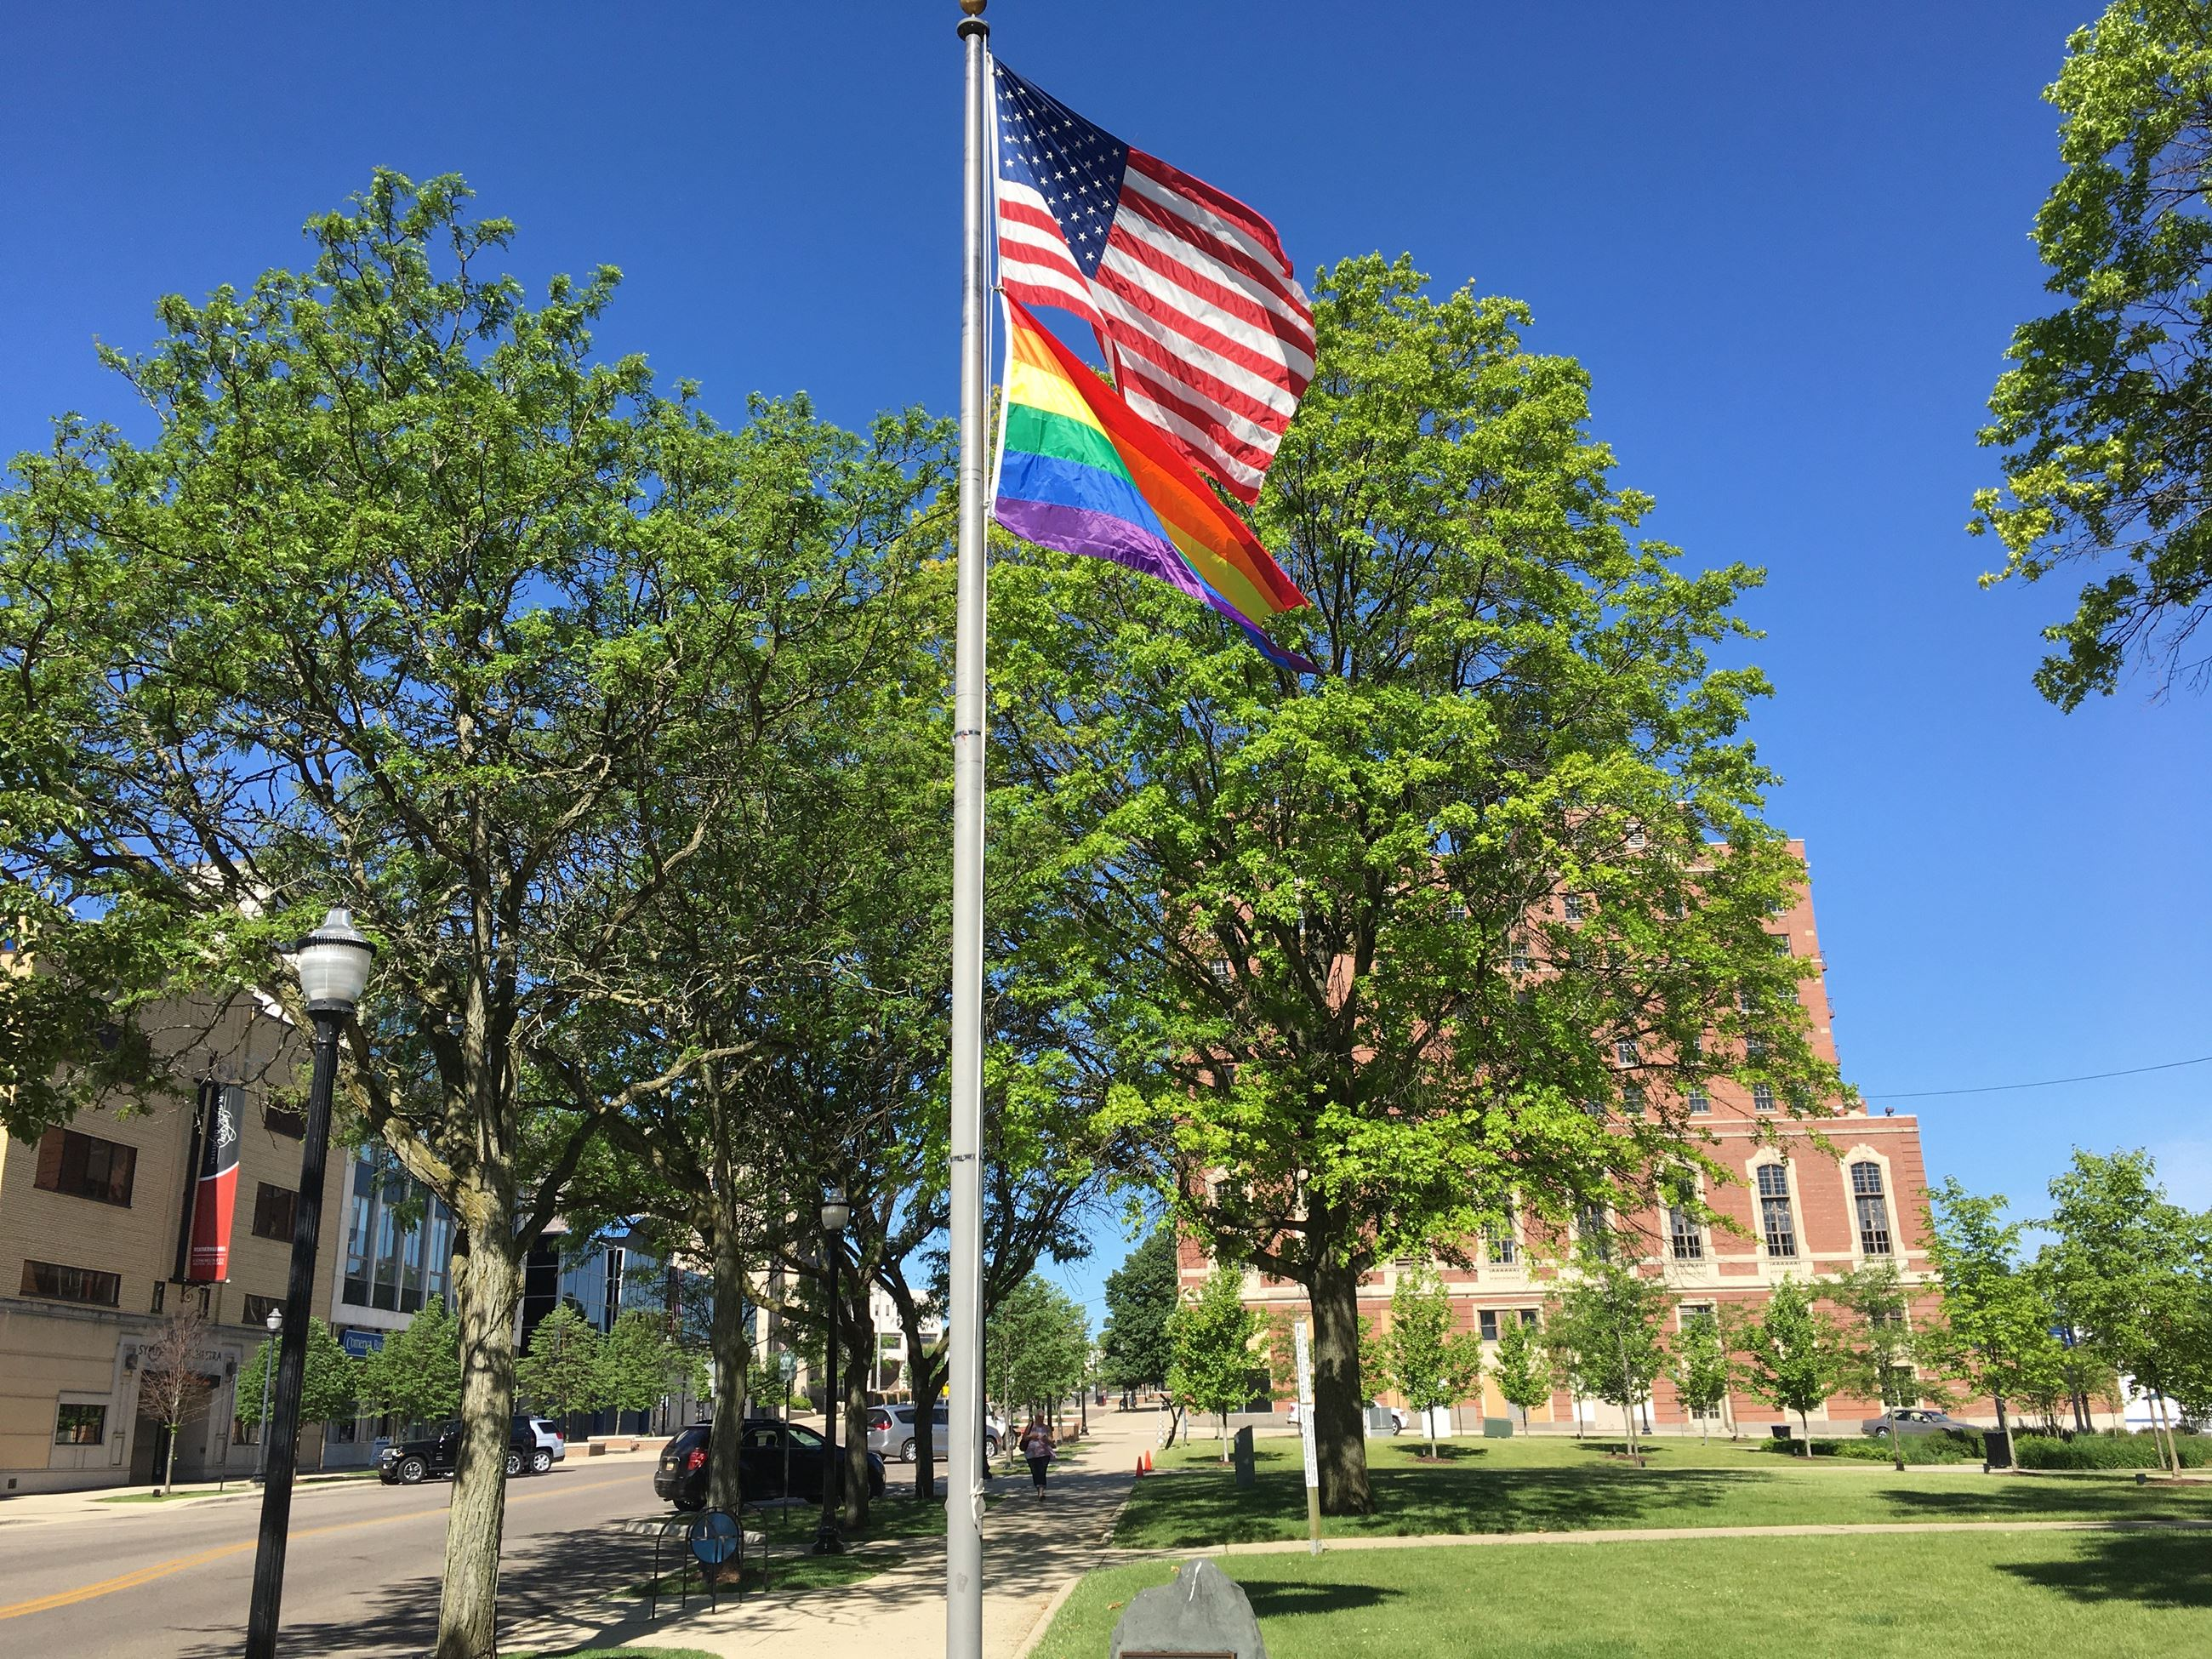 Pride flag in Downtown Jackson